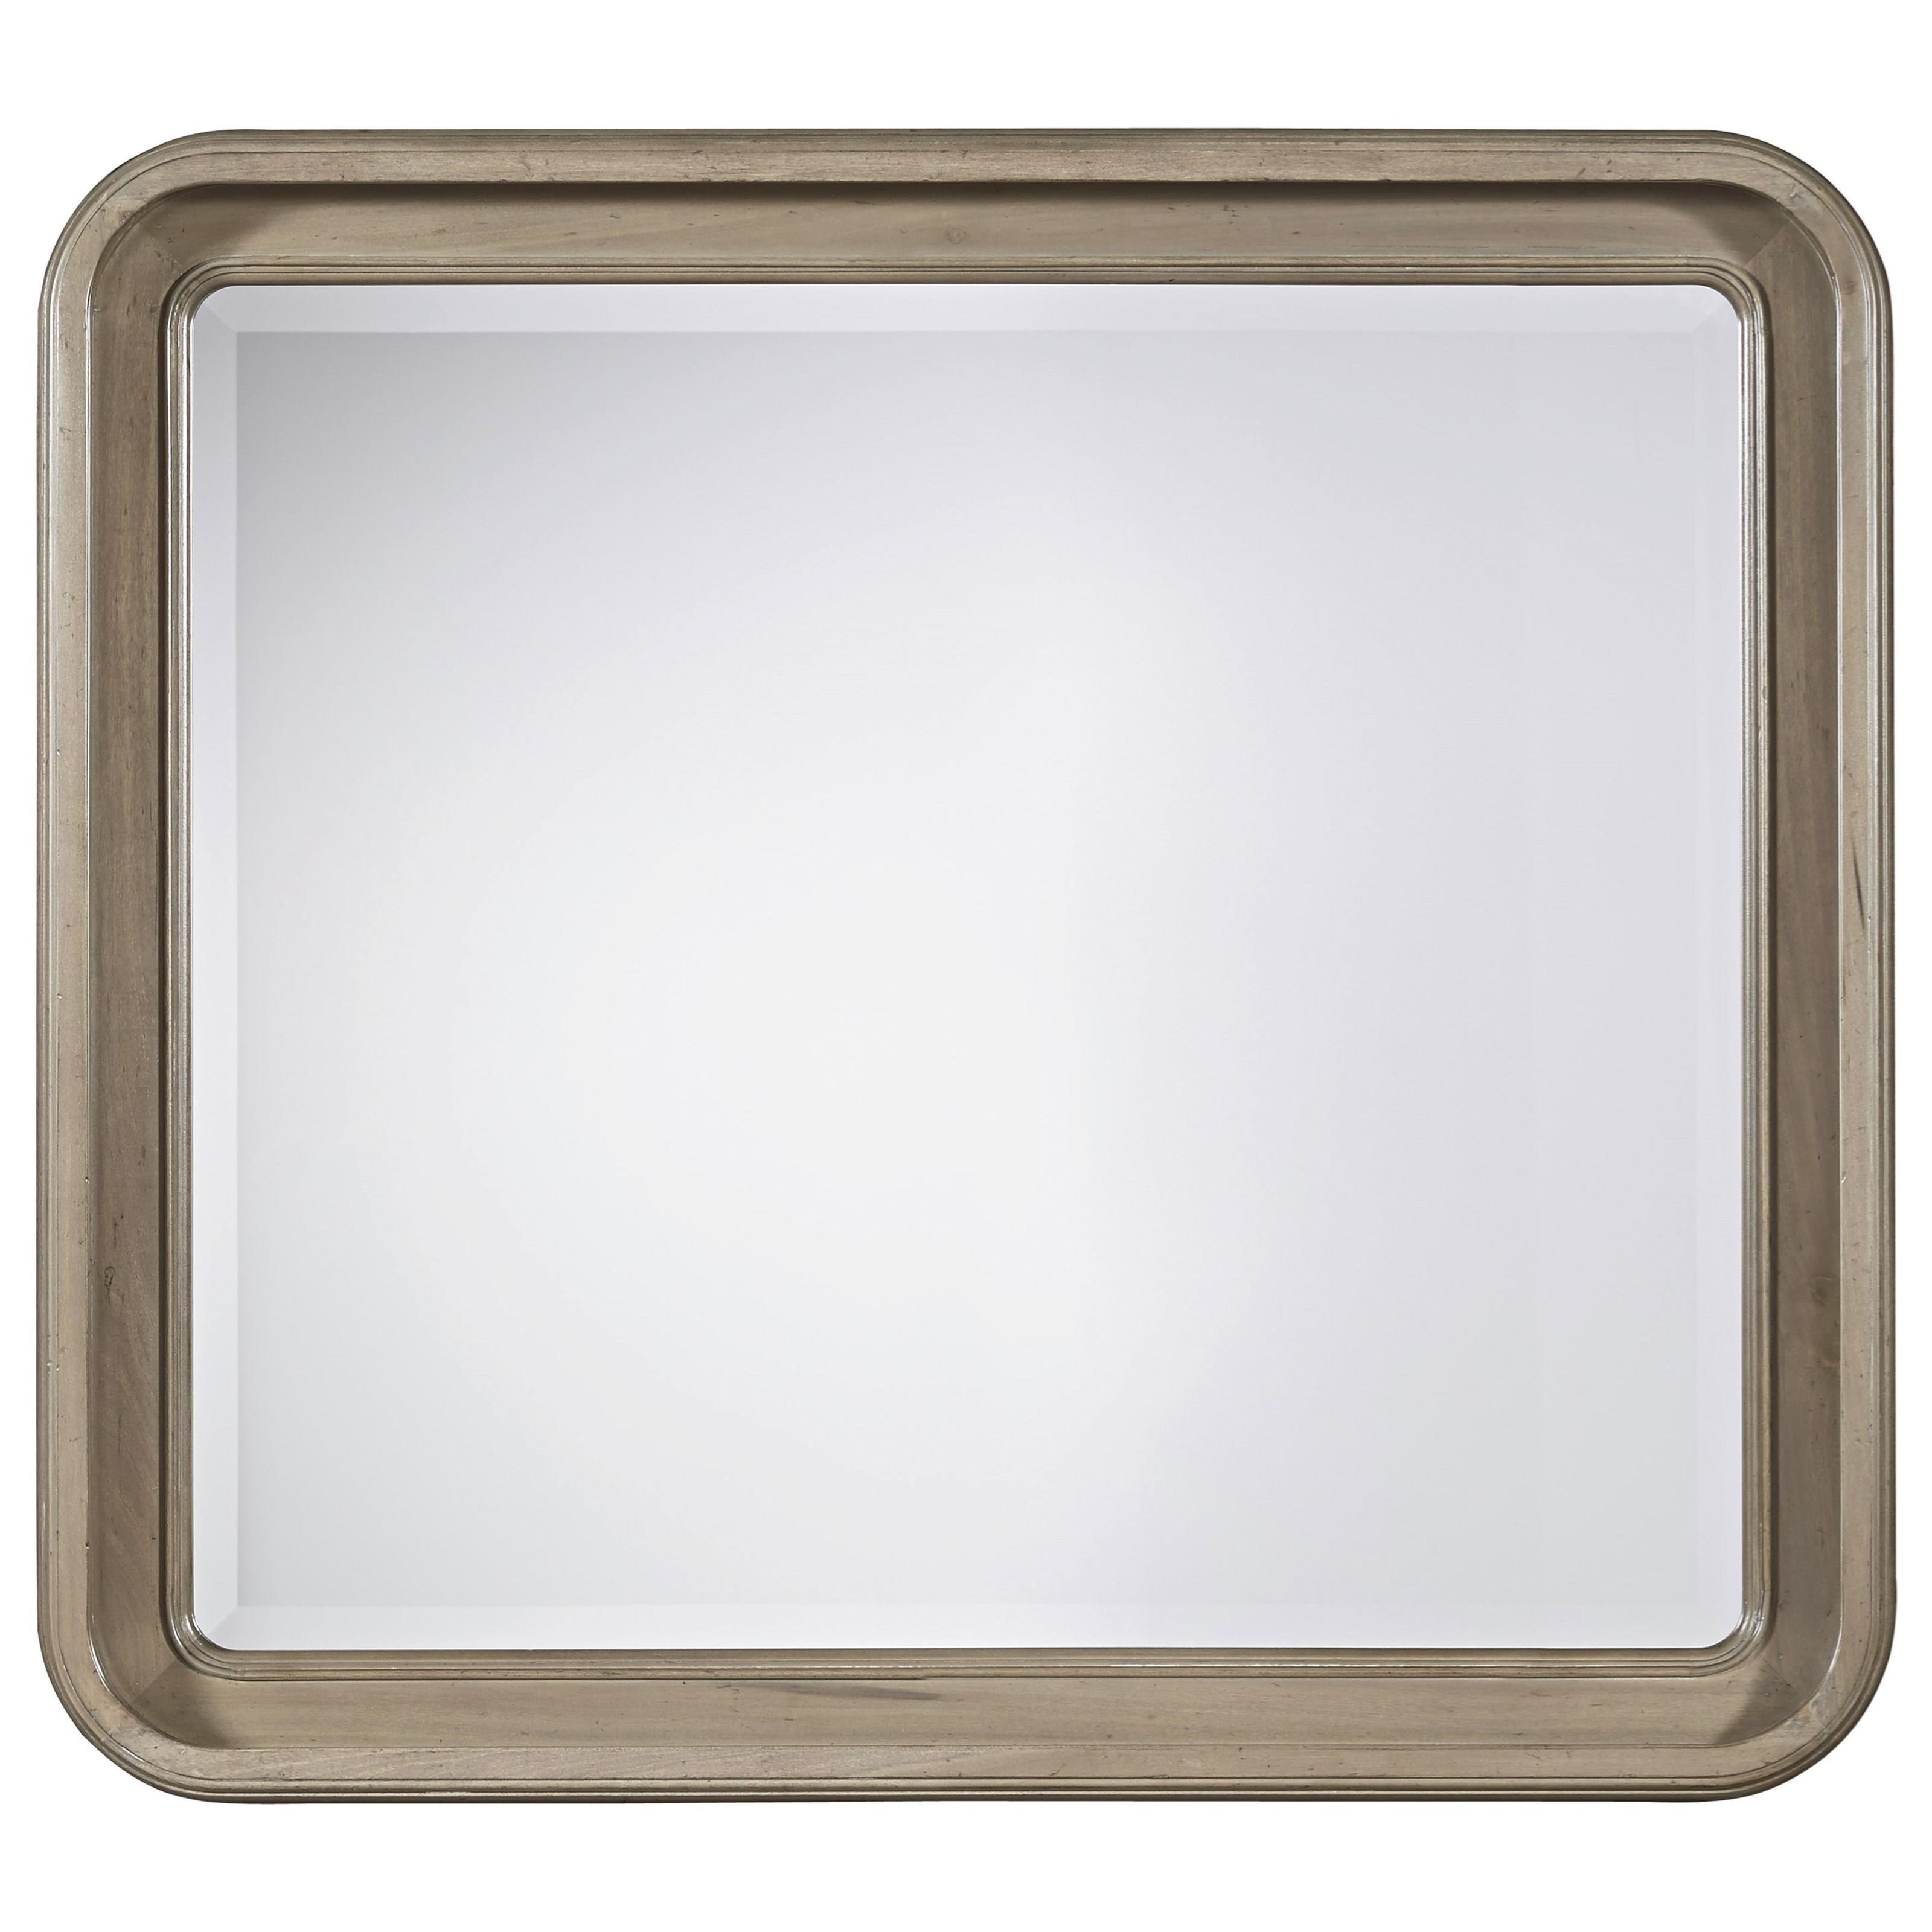 Reprise Mirror by Universal at Baer's Furniture